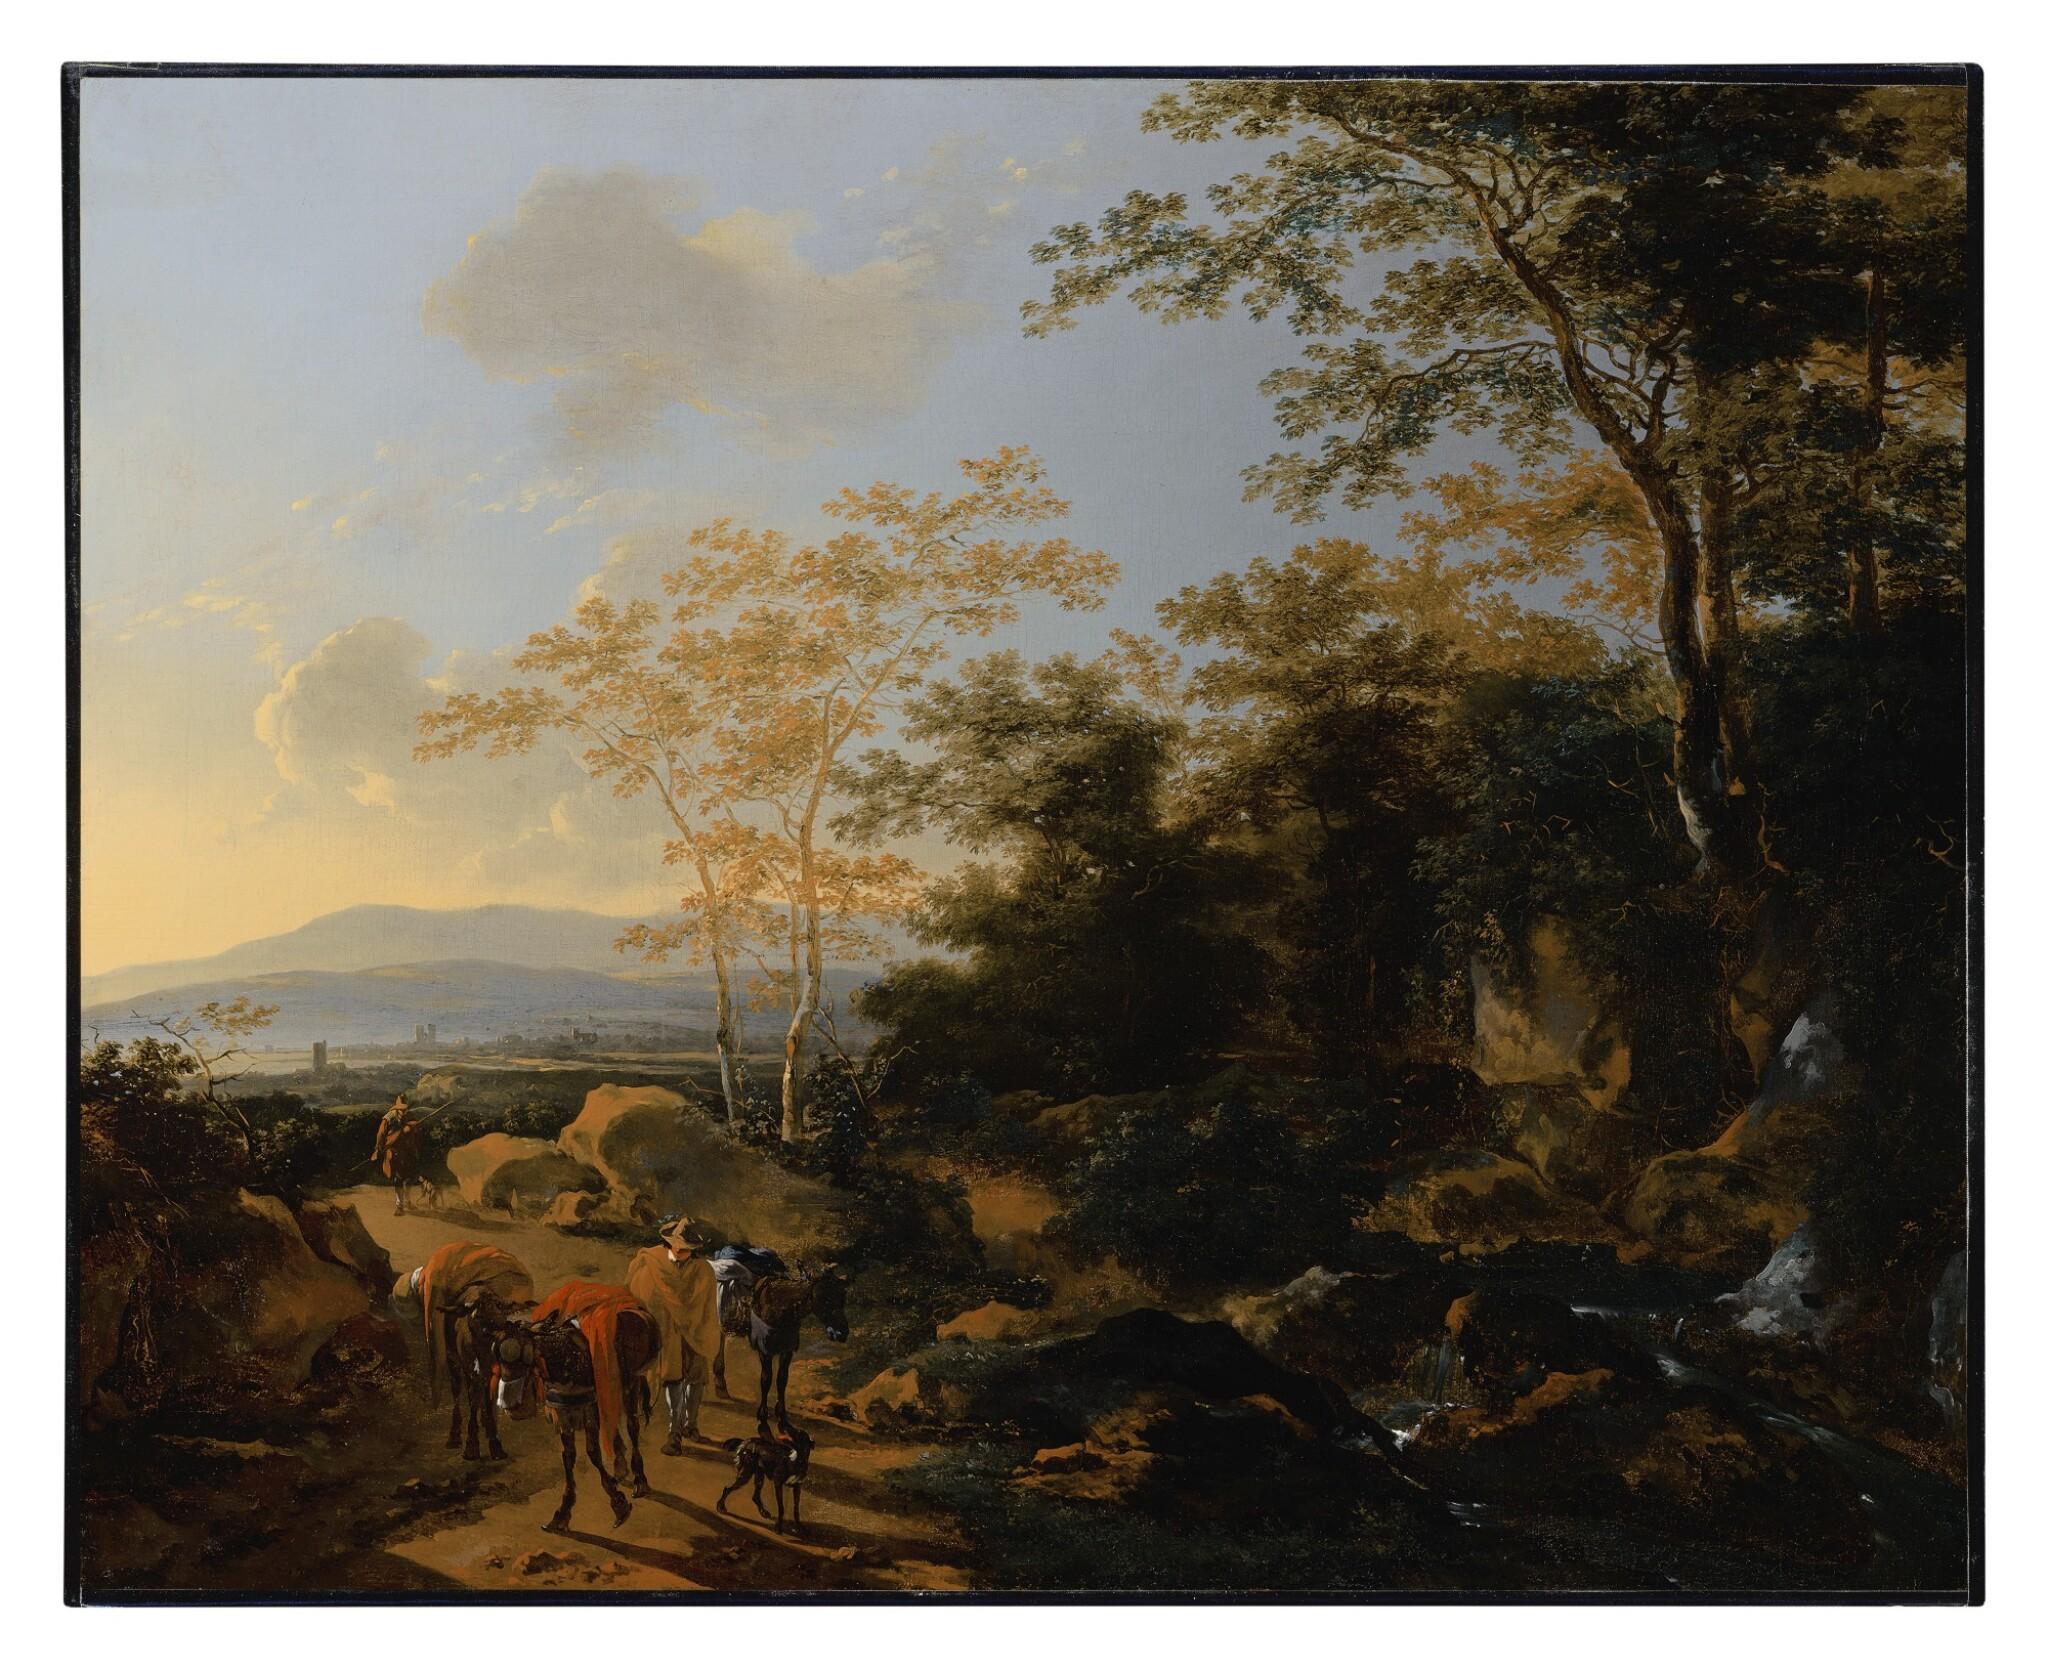 An Italianate landscape with travelers and mules by a waterfall